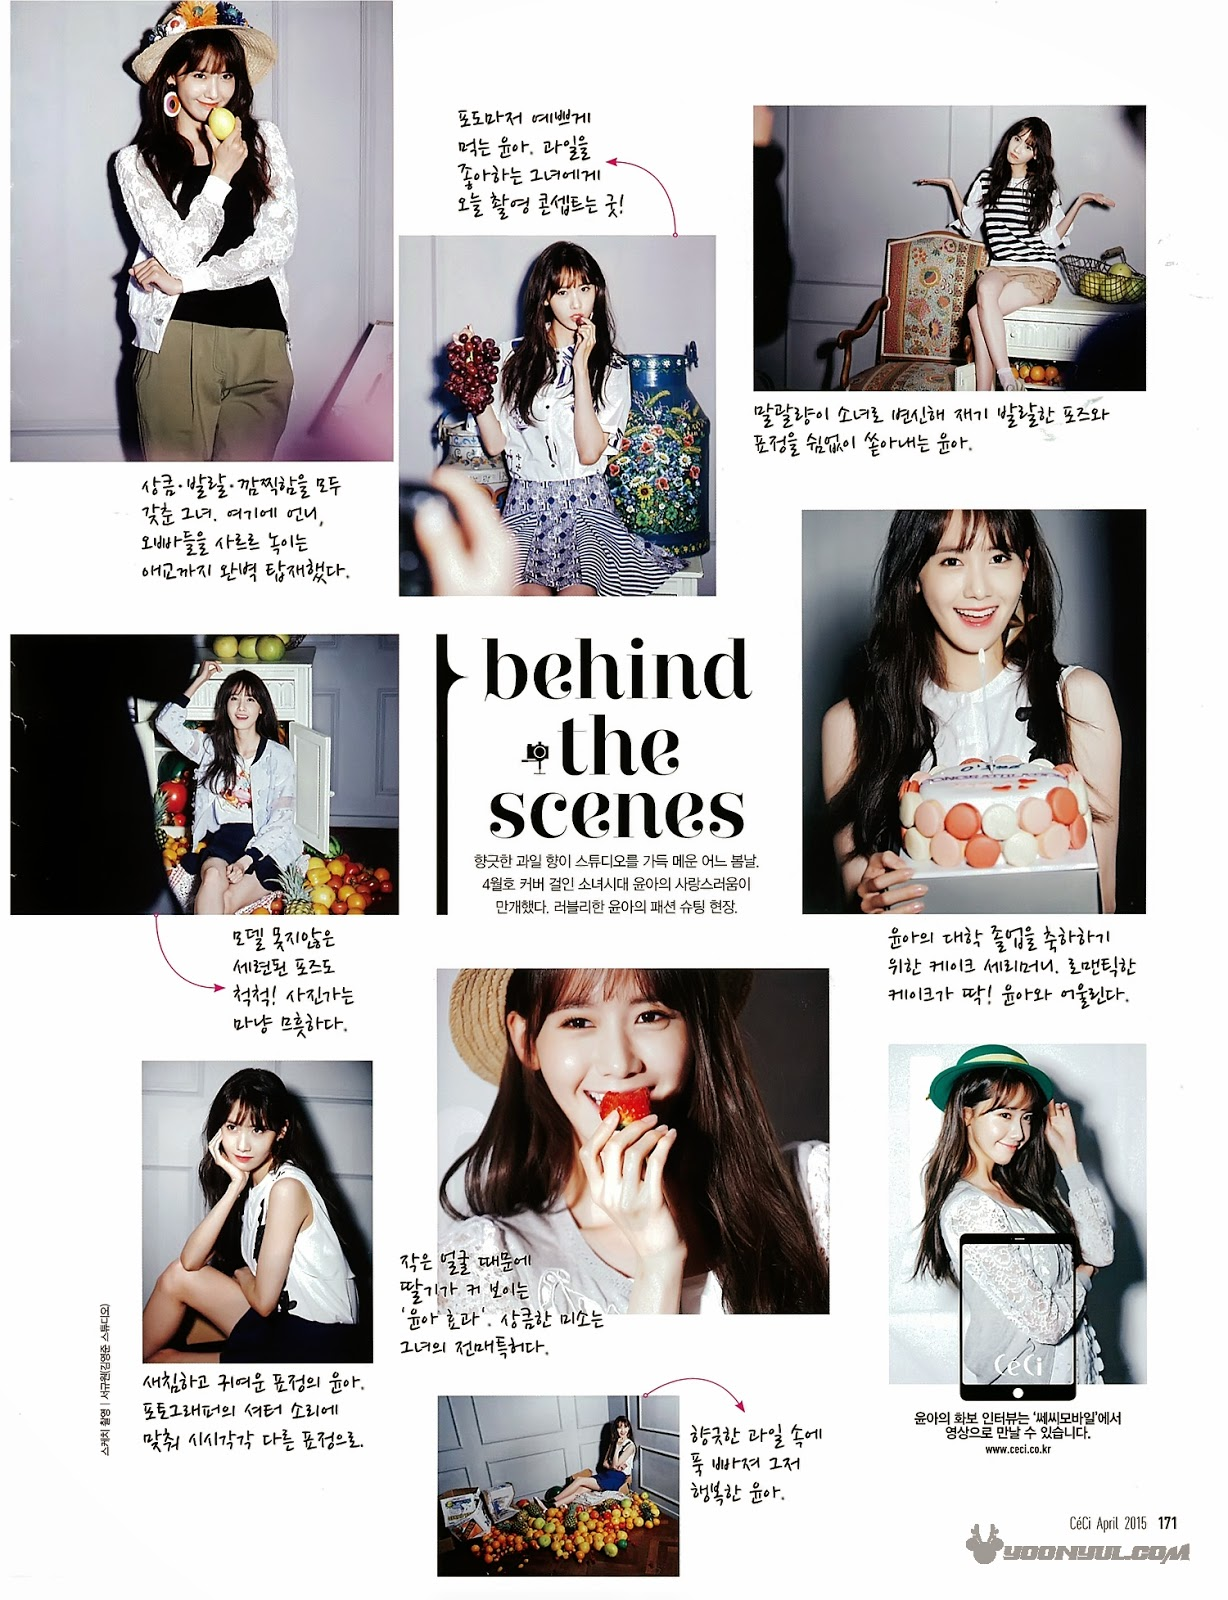 Yoona Girls' Generation CéCi April yoona pictorial yoona magazine cover model yoona ceci cover model K pop K-pop enjoykorea Taeyeon Sunny Tiffany Hyoyeon Yuri Sooyoung Yoona Seohyun